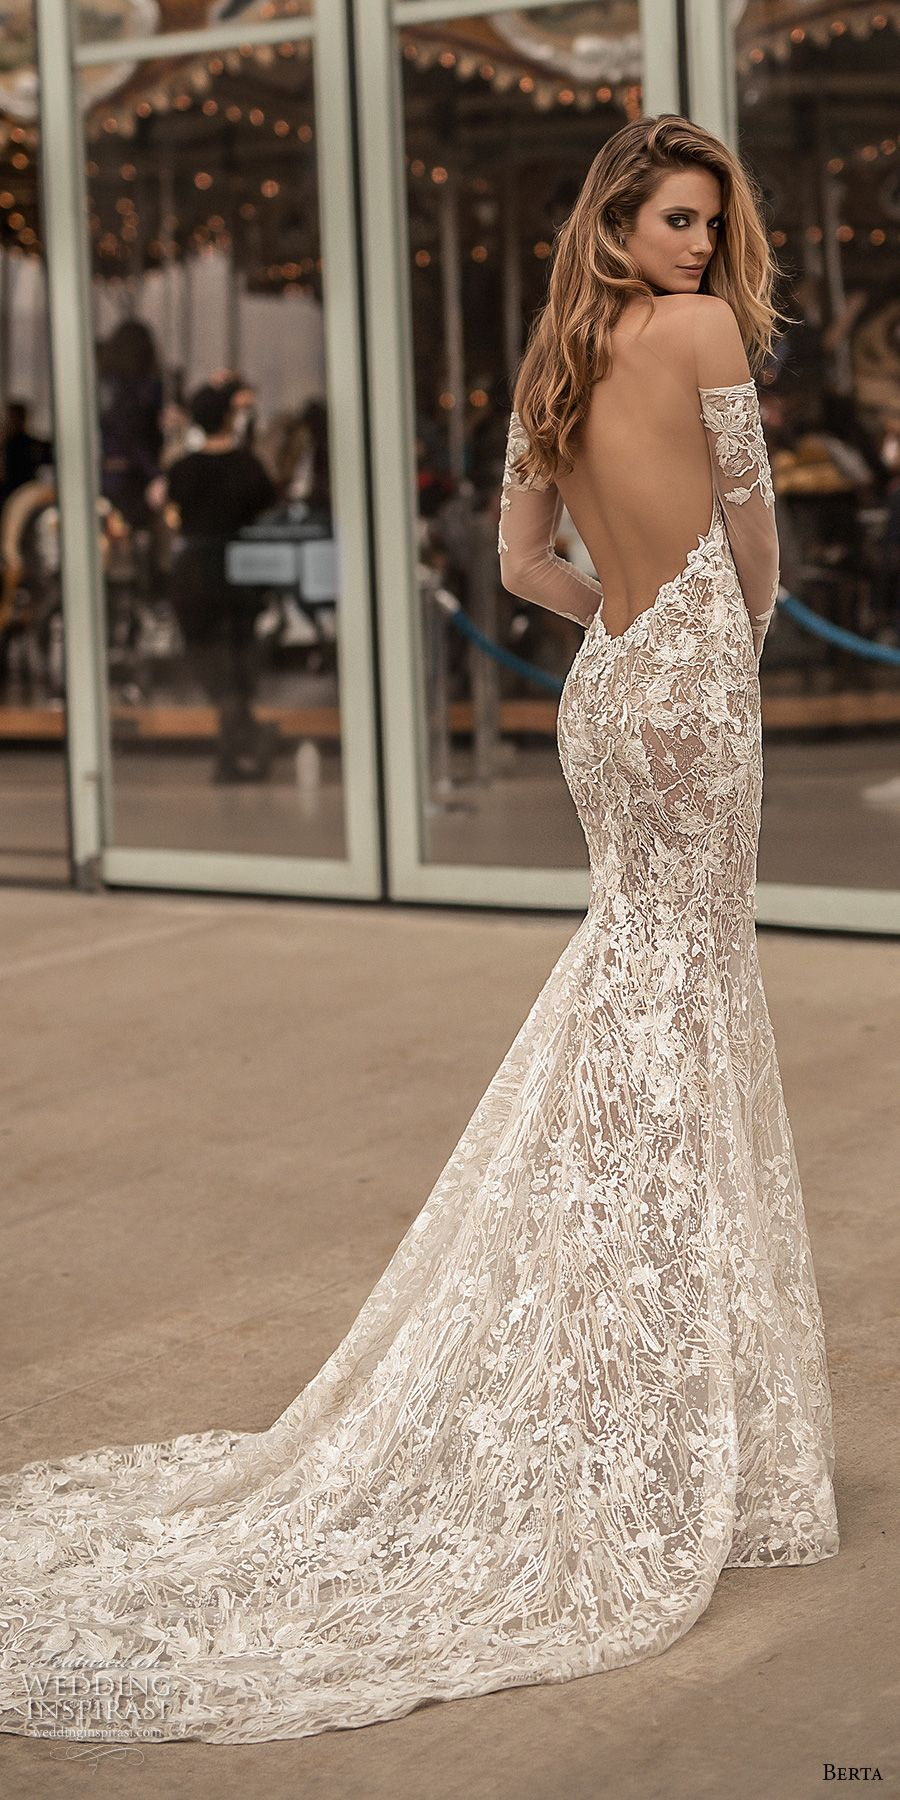 Berta spring 2018 wedding dresses campaign photos neckline berta spring 2018 bridal long sleeves off the shoulder sweetheart neckline full embellishment sexy elegant fit and flare wedding dress open low back medium junglespirit Image collections